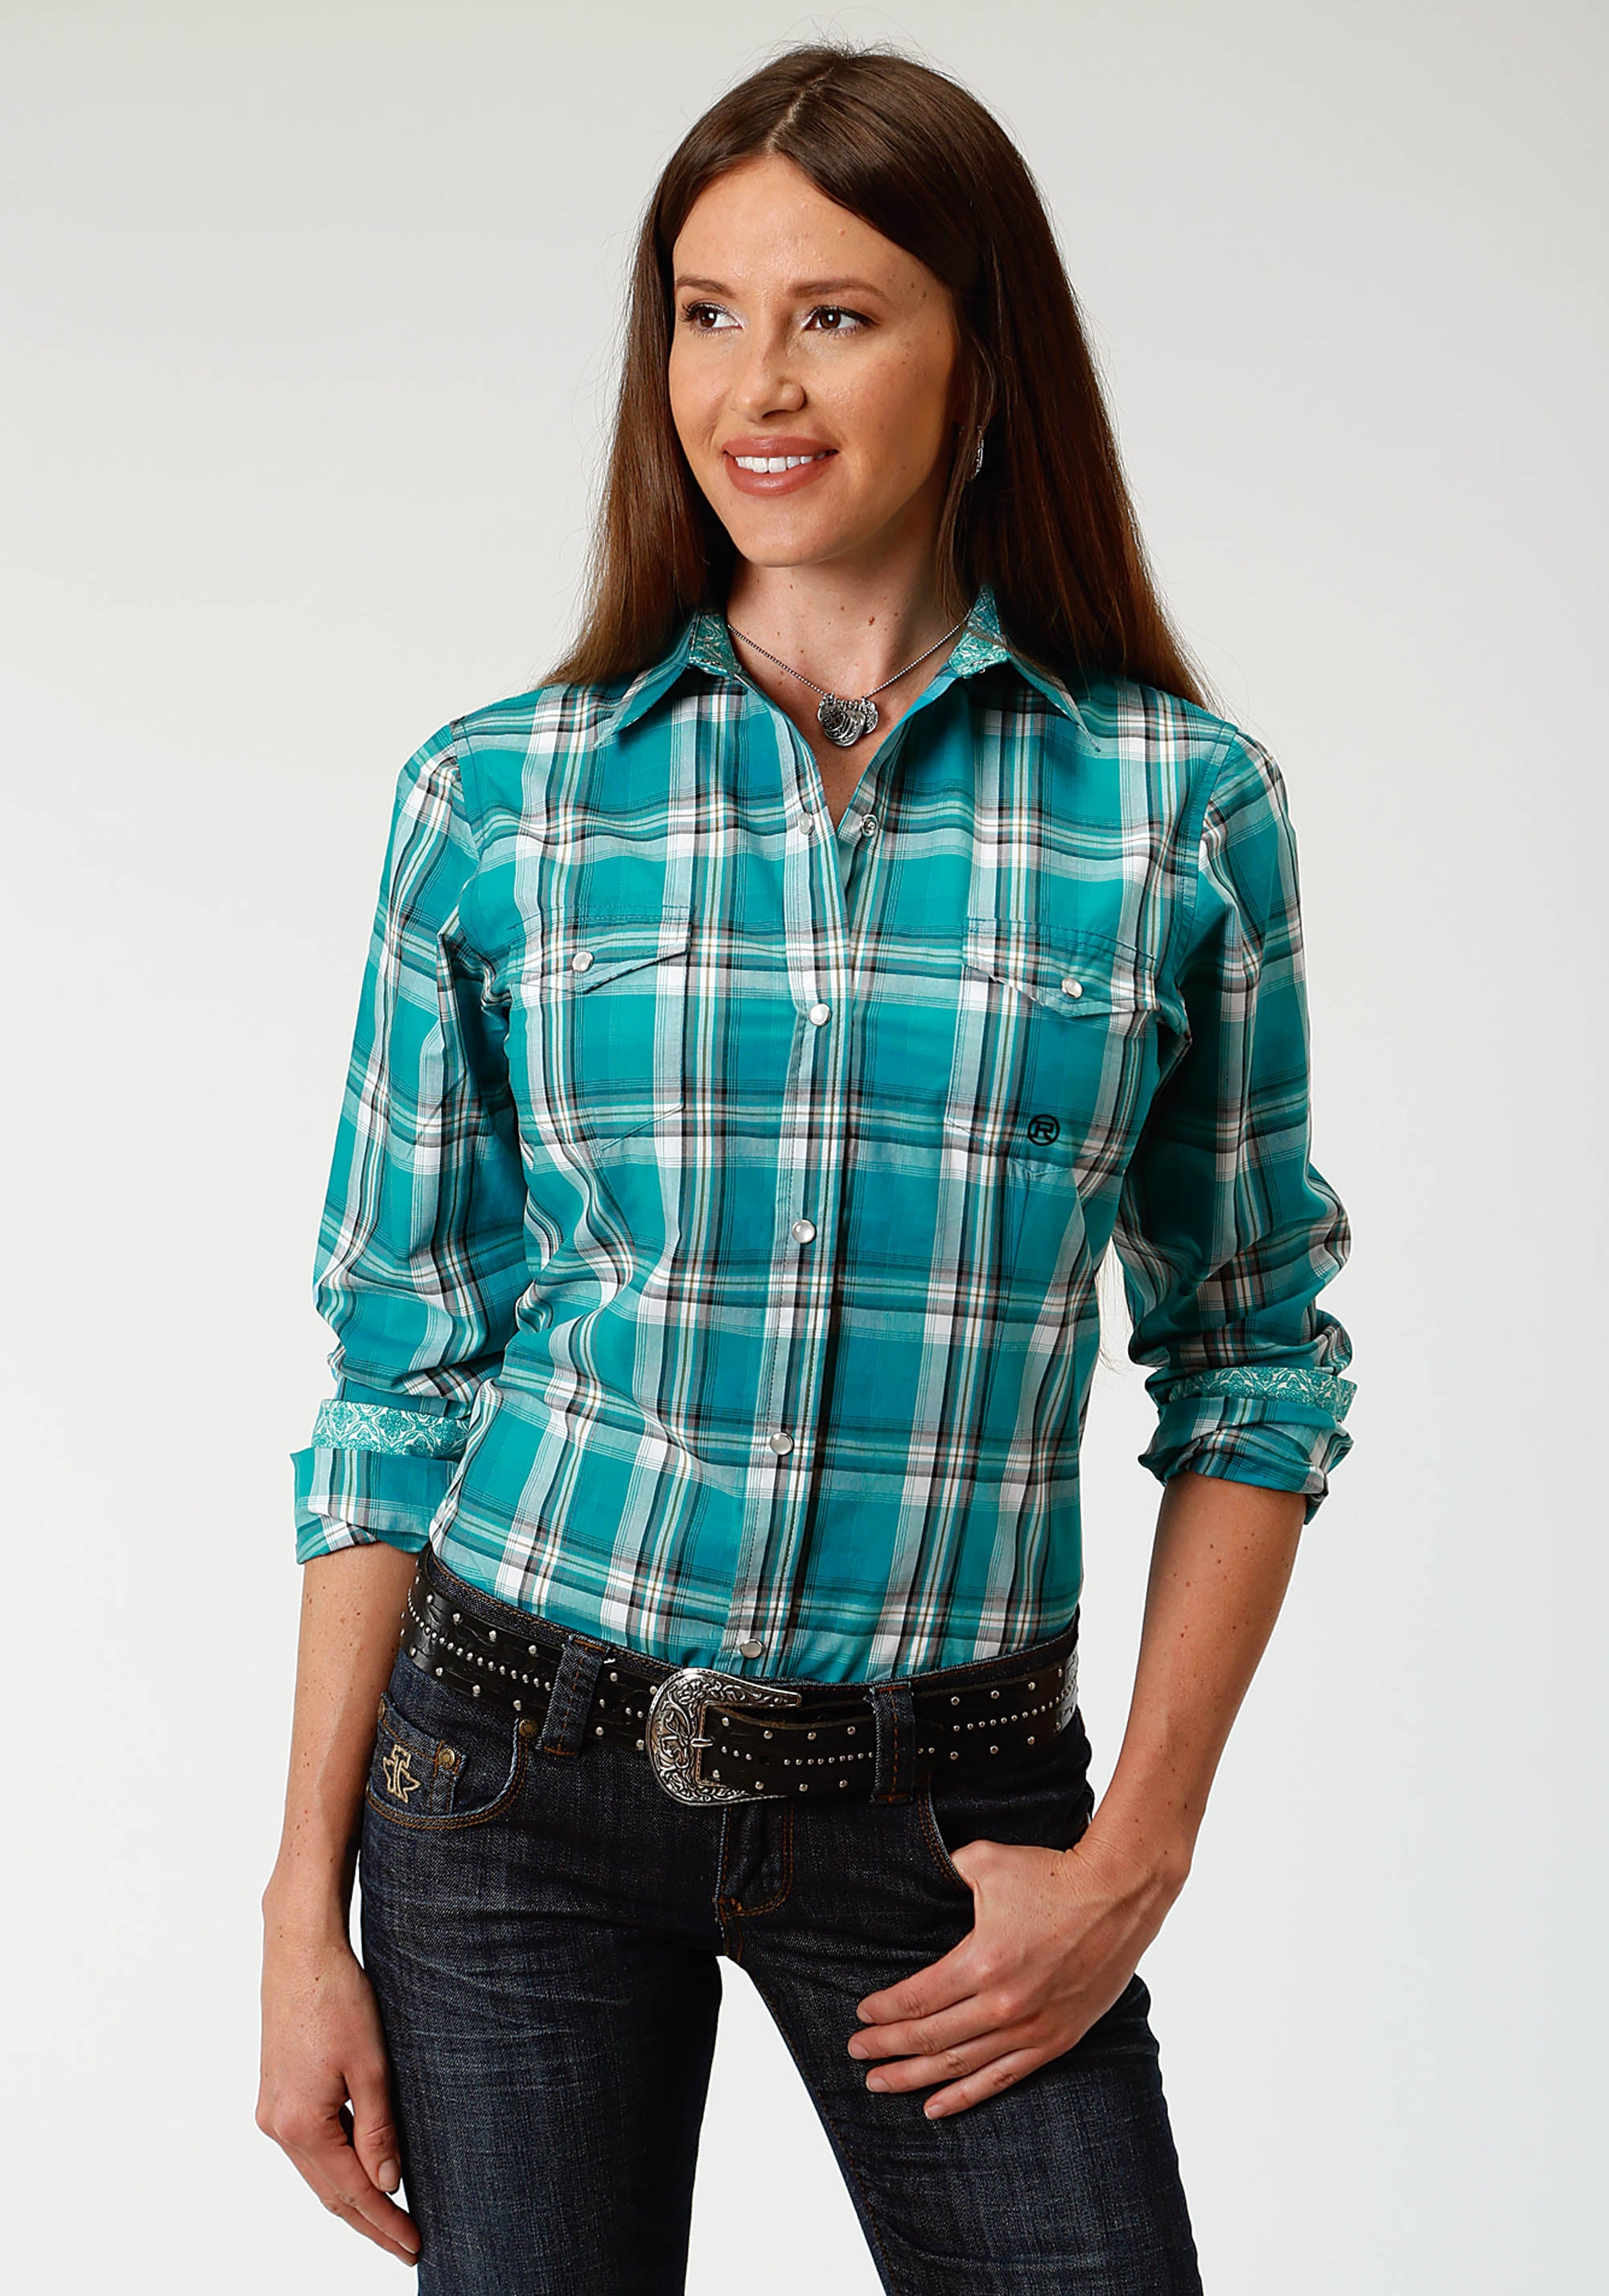 ROPER WOMENS GREEN 3335 JADE PLAID LADIES AMARILLO COLLECTION- DEEP SEA LONG SLEEVE